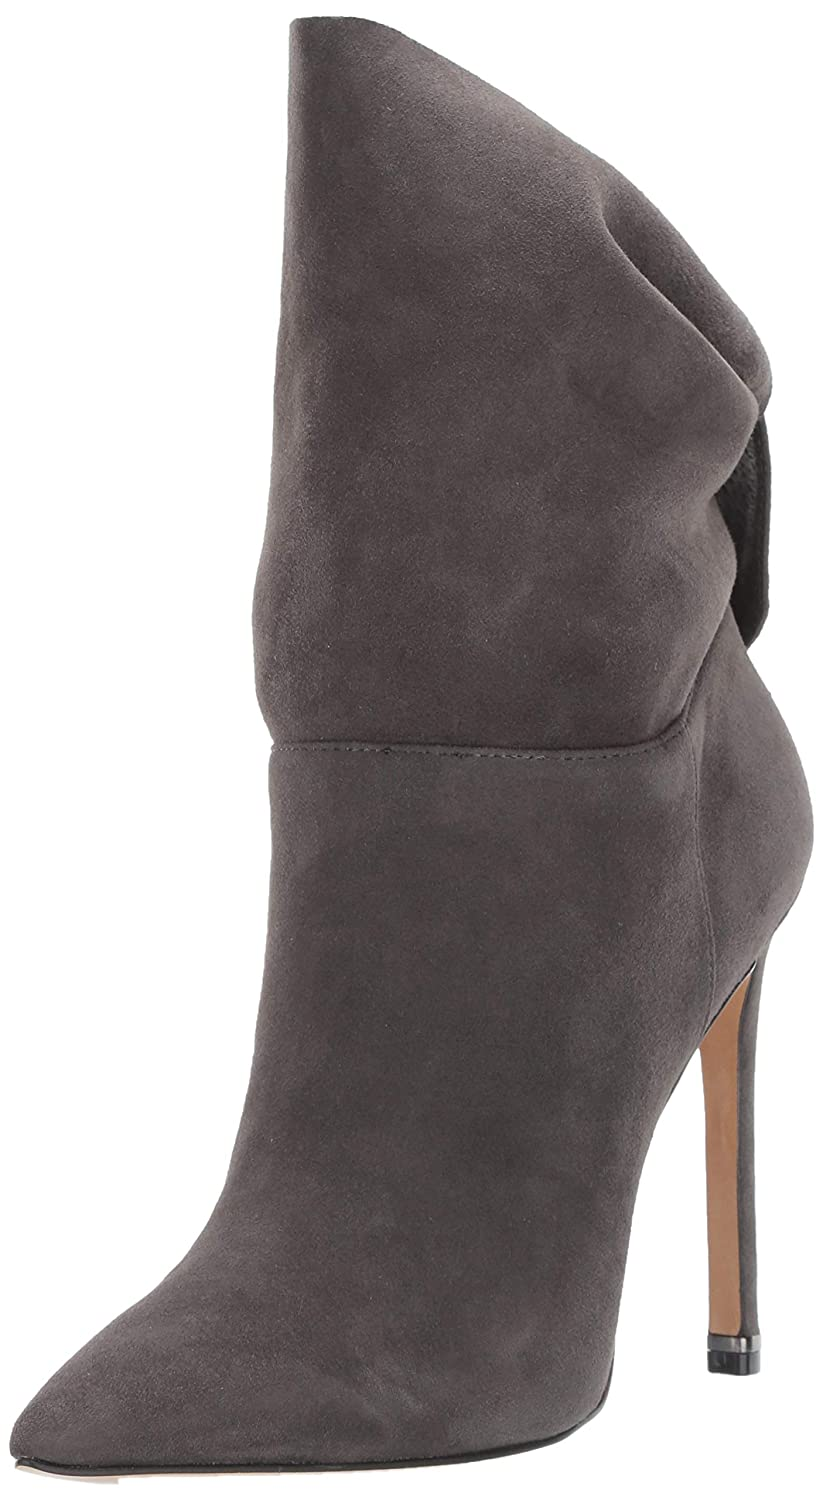 1581544eed Amazon.com | Kenneth Cole New York Women's Riley 110 Mm Heel Slouch Bootie  Ankle Boot | Ankle & Bootie